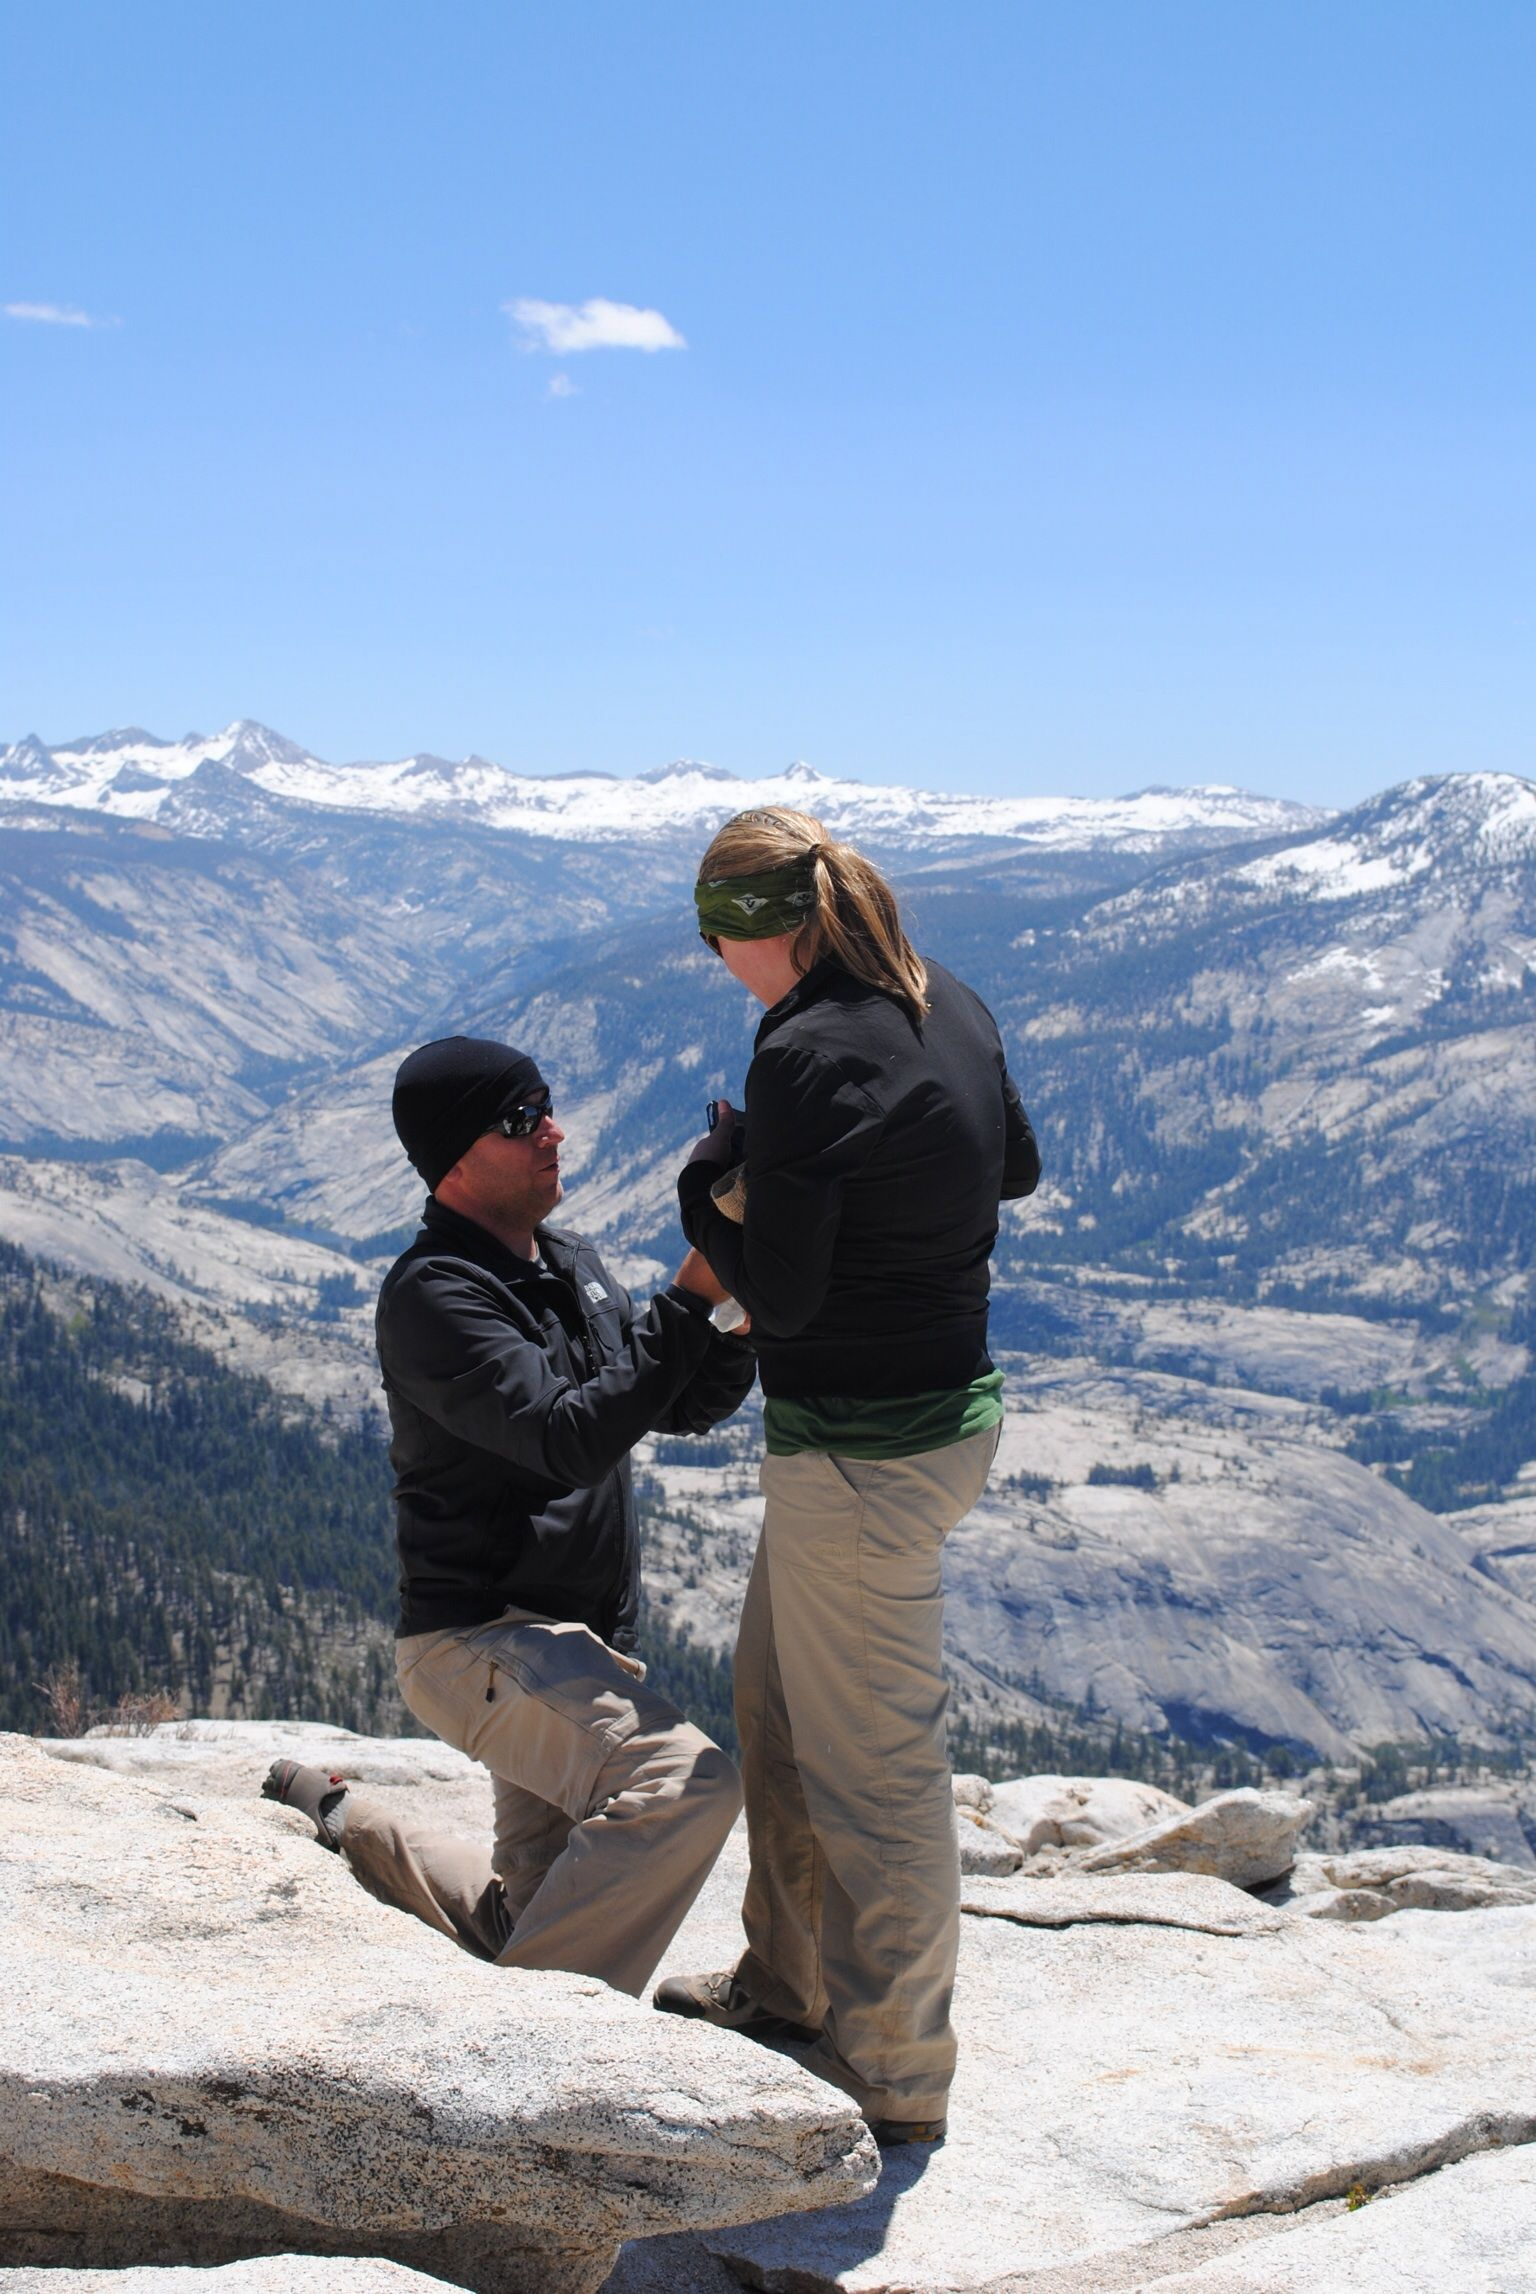 Proposal on Cloud's Rest, Yosemite